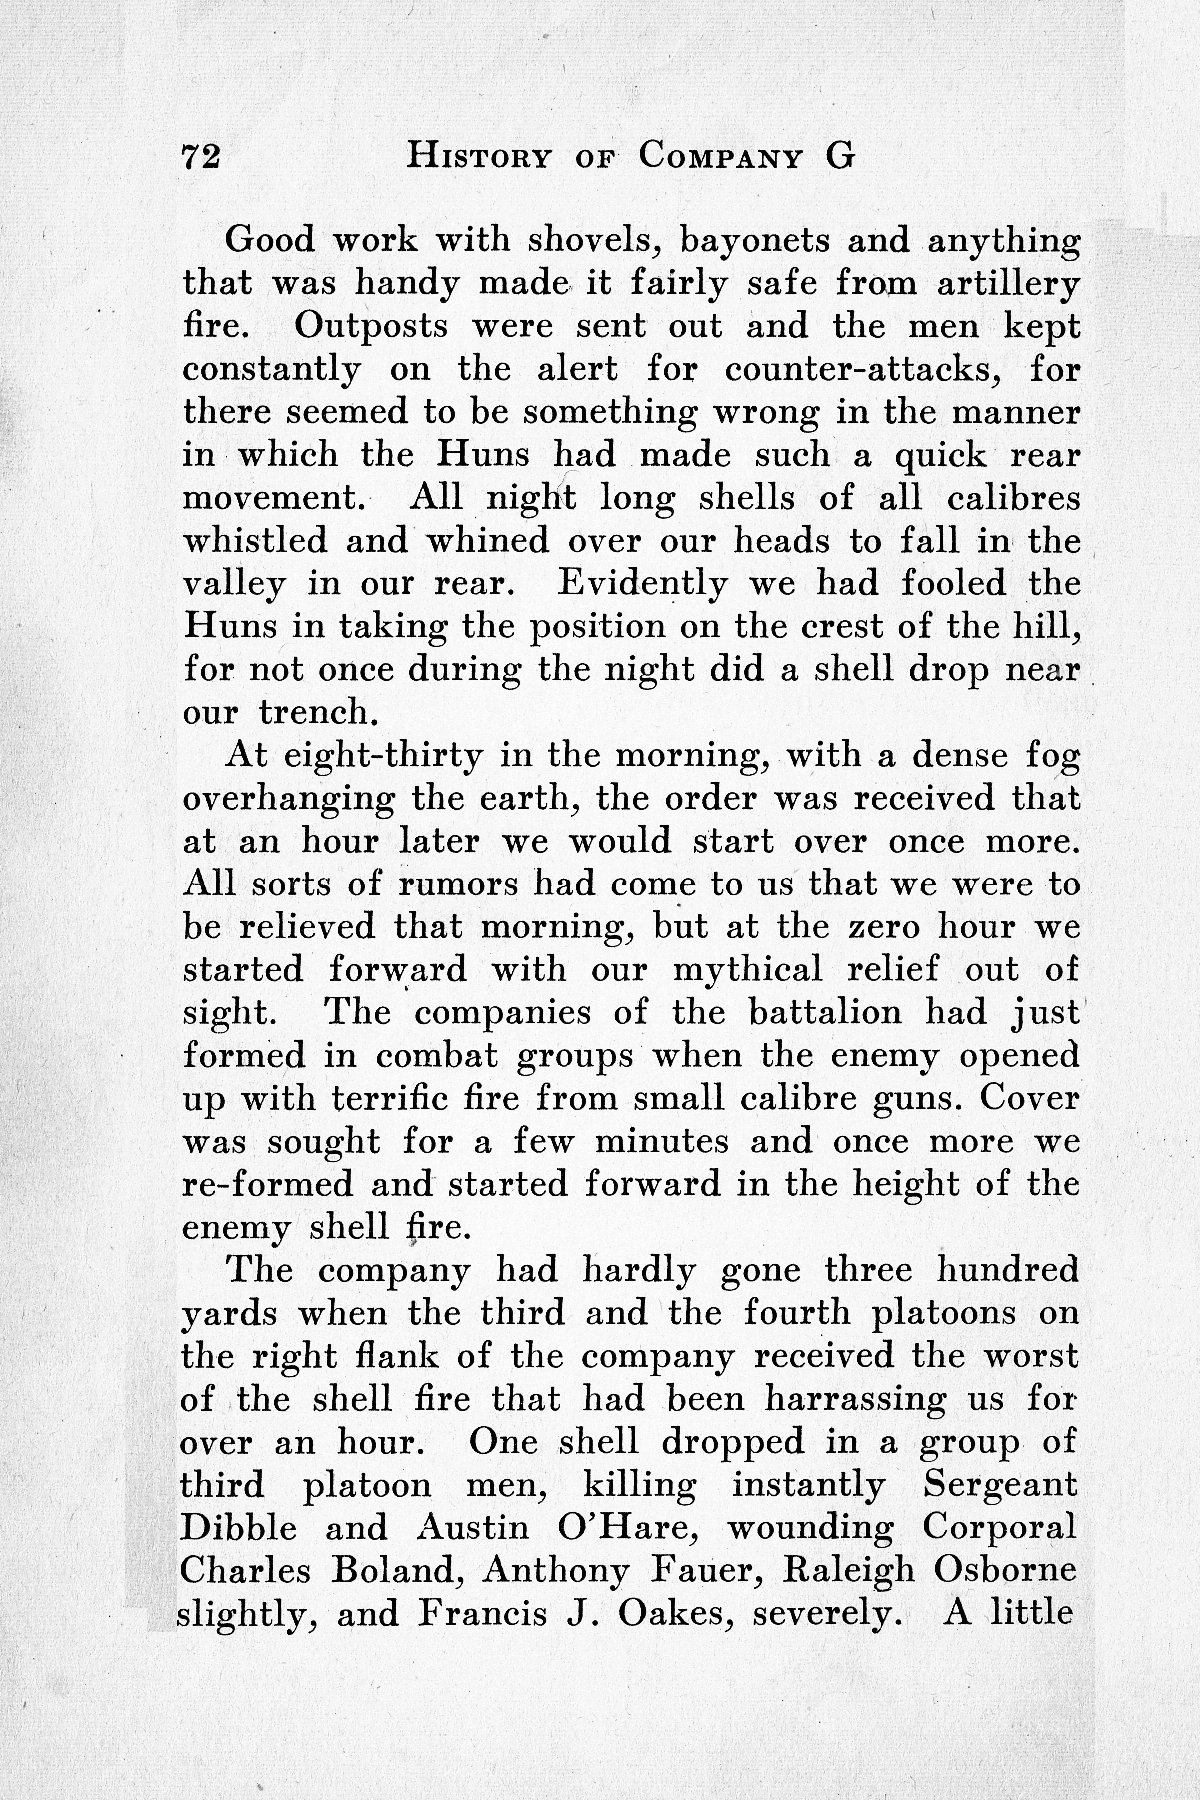 History of Company G 314th Infanty - Page 072